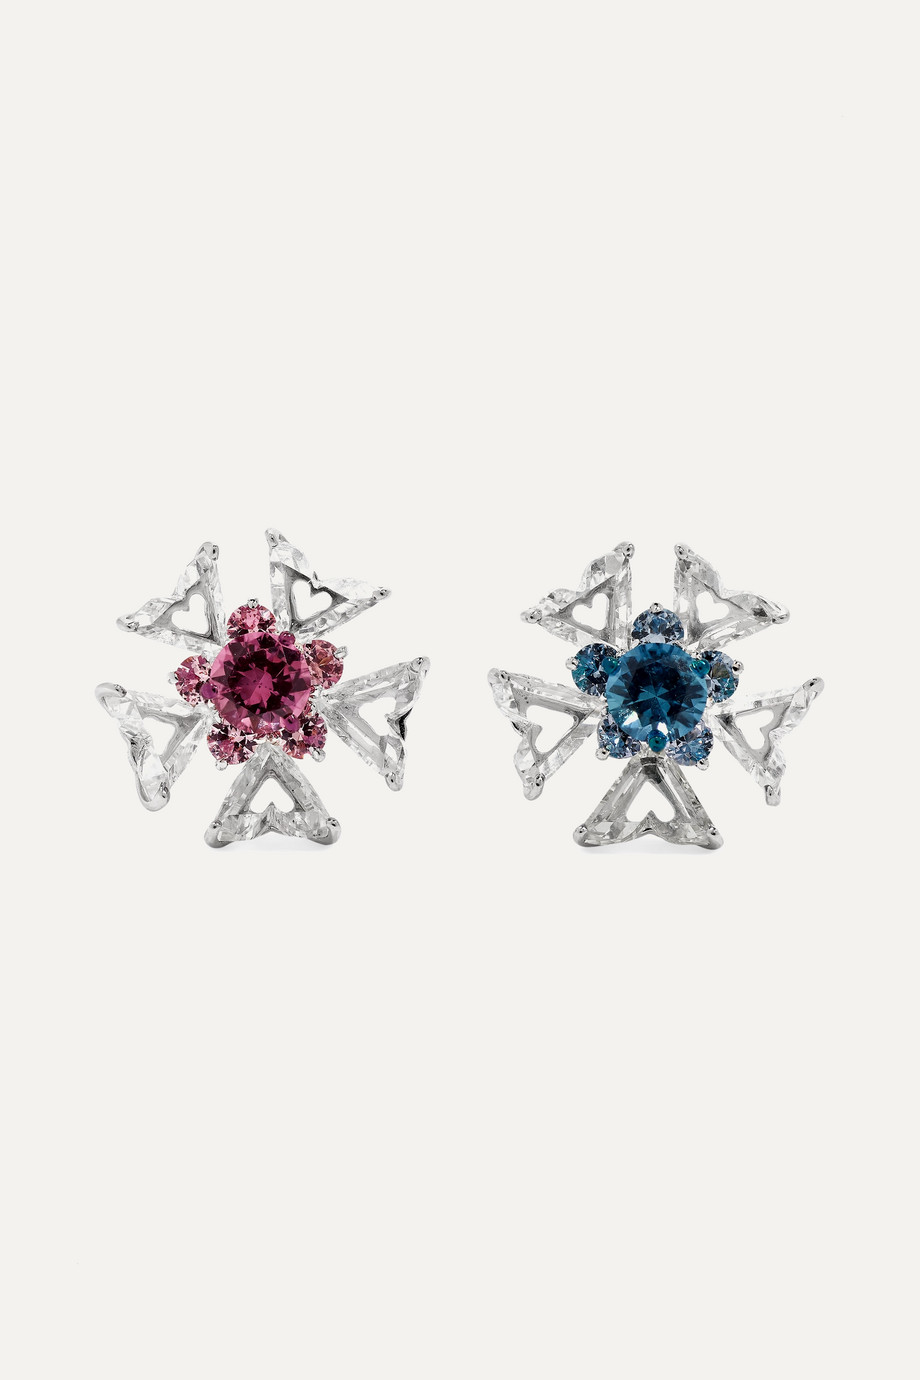 Bina Goenka 18-karat white gold multi-stone earrings